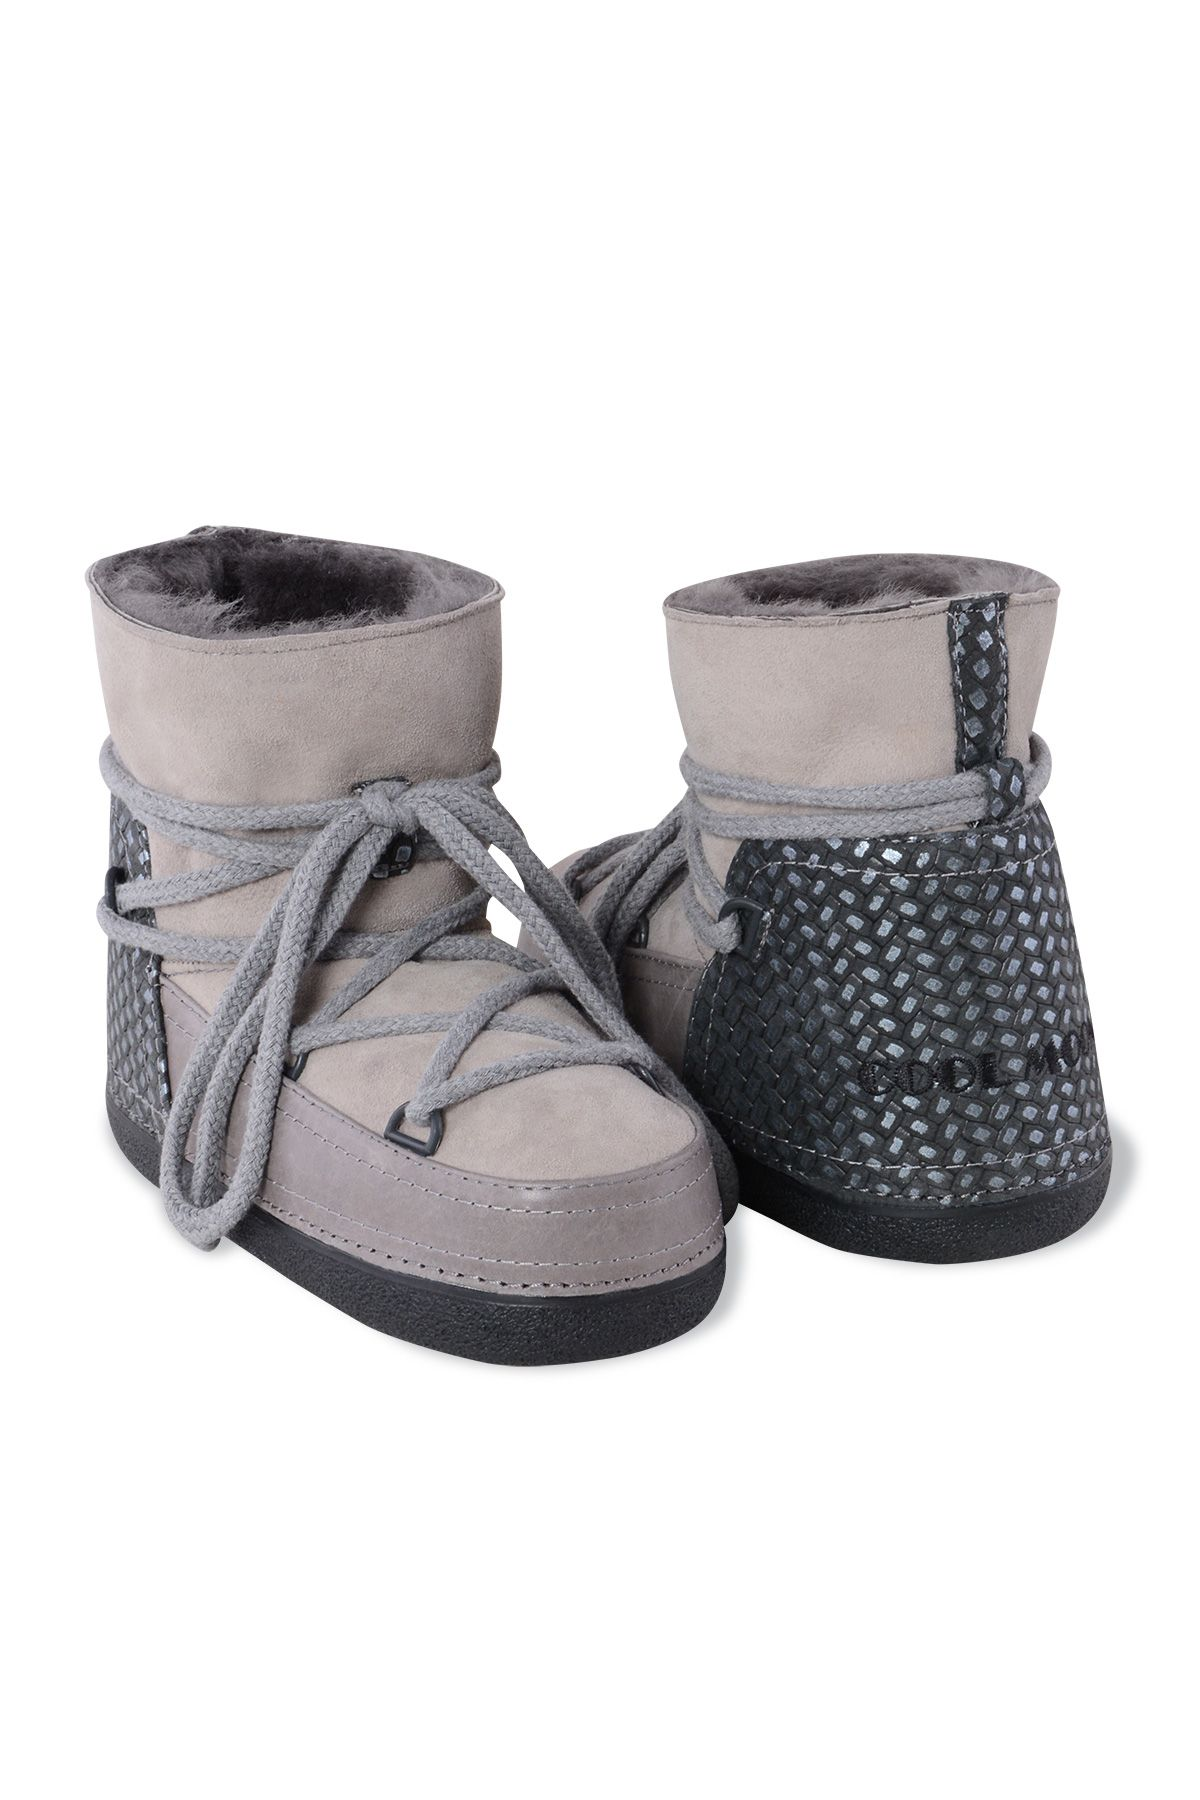 Cool Moon Genuine Leather & Shearling Women's Snowboots 251024 Gray